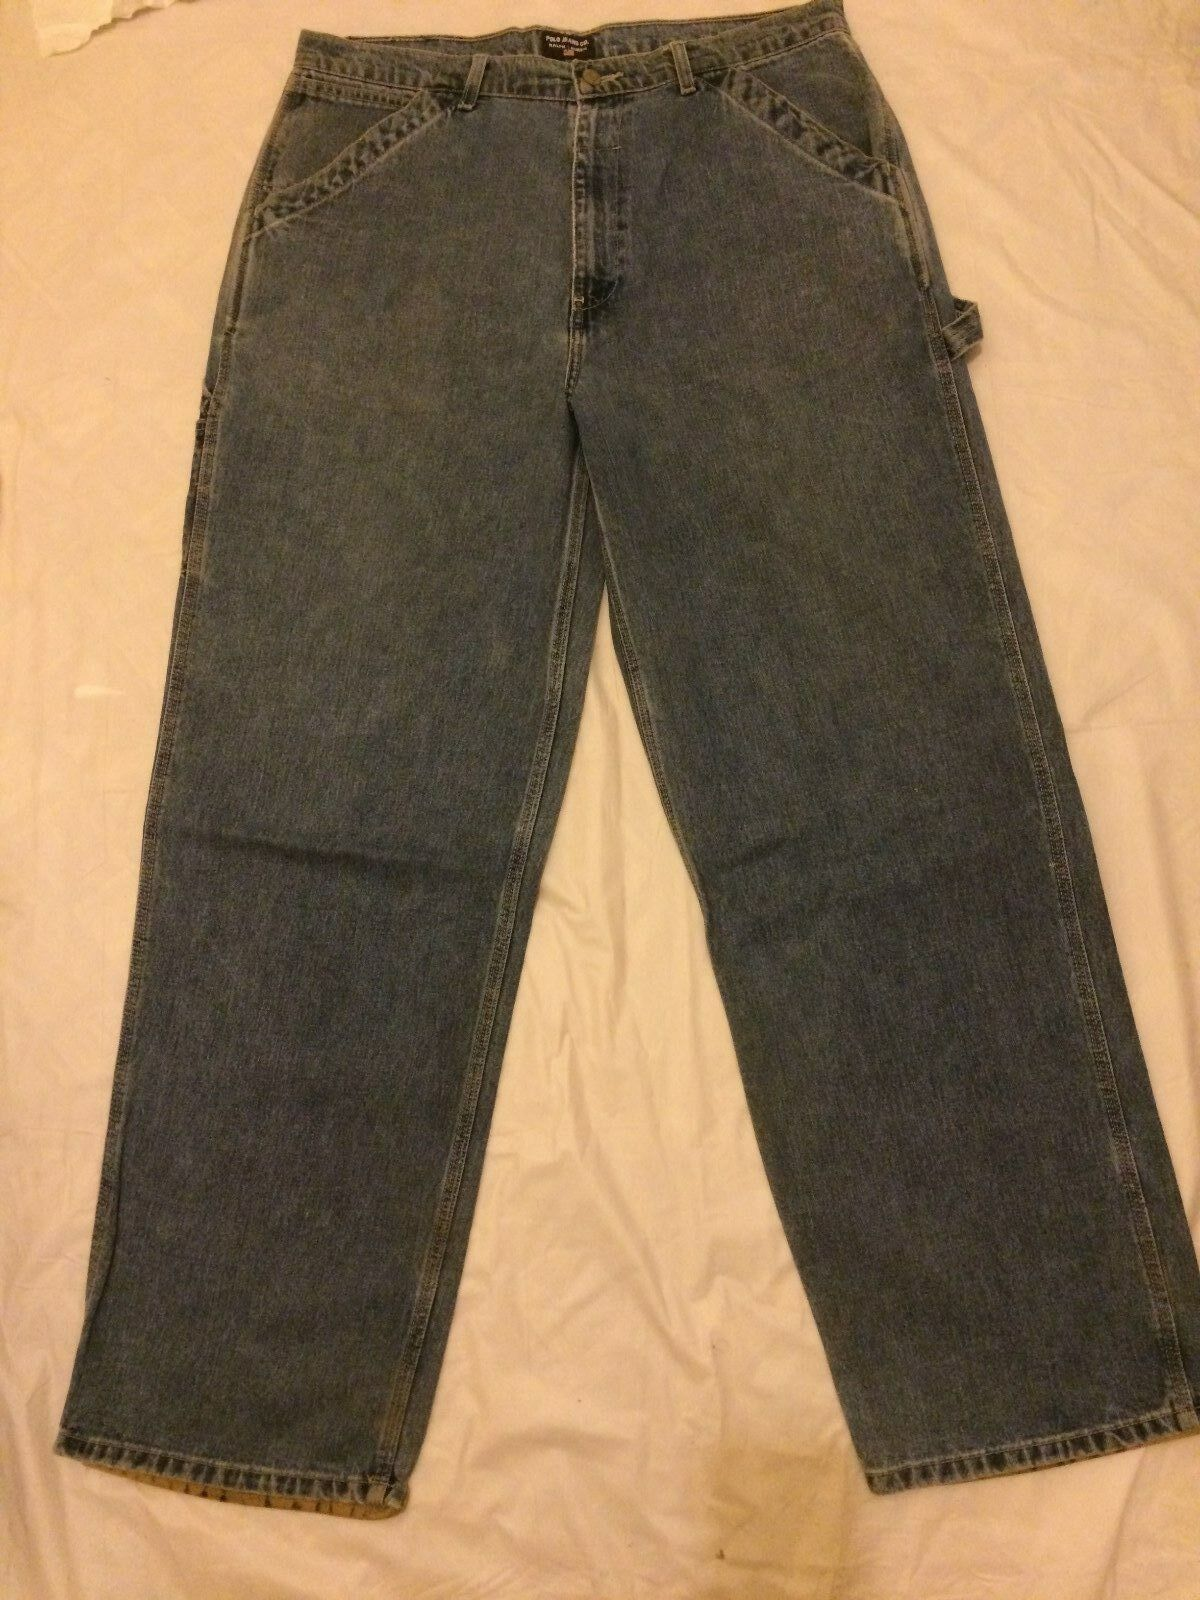 Ralph Lauren Polo Contruction Jeans with Leather POLO Cuffs